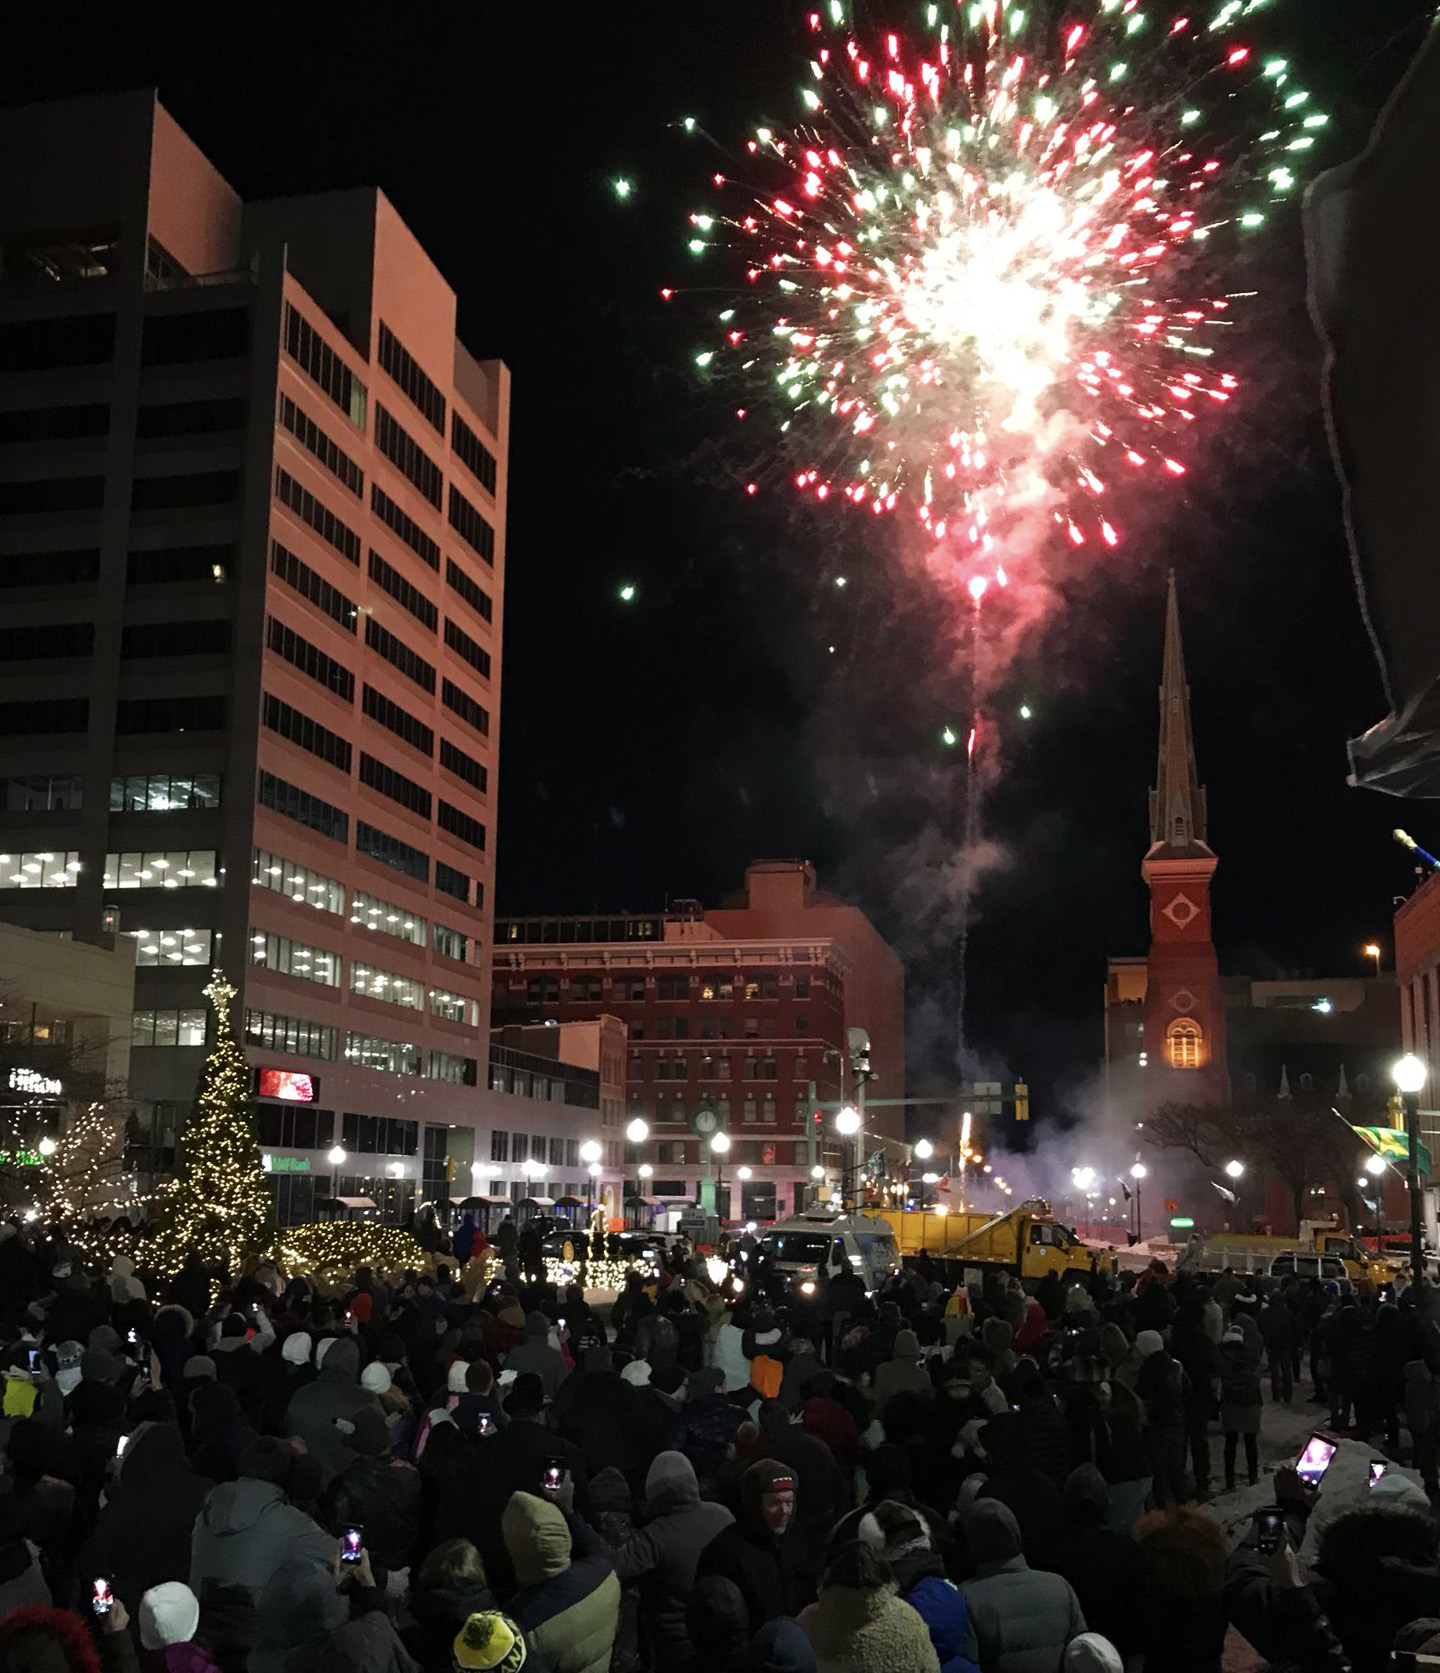 Harrisburg New Year's Eve 2018